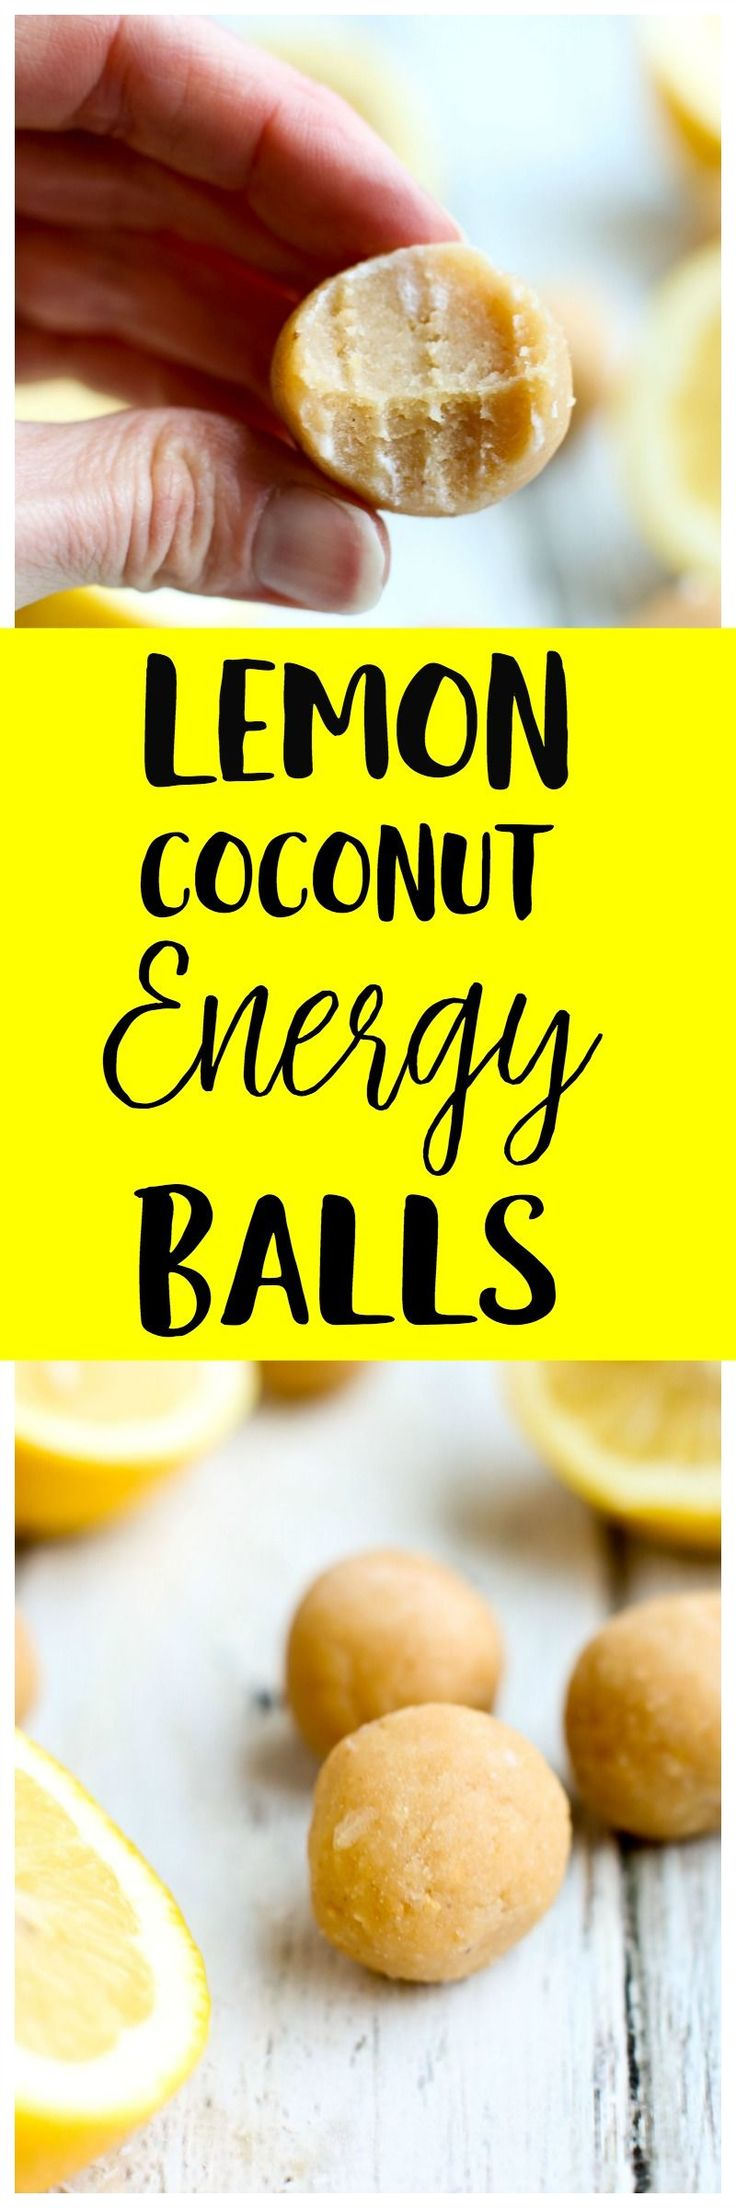 These Lemon Coconut Energy Balls are low sugar, low carb, high protein, and made with nutritious ingredients. The whole family loves this healthy gluten-free and vegan snack recipe!